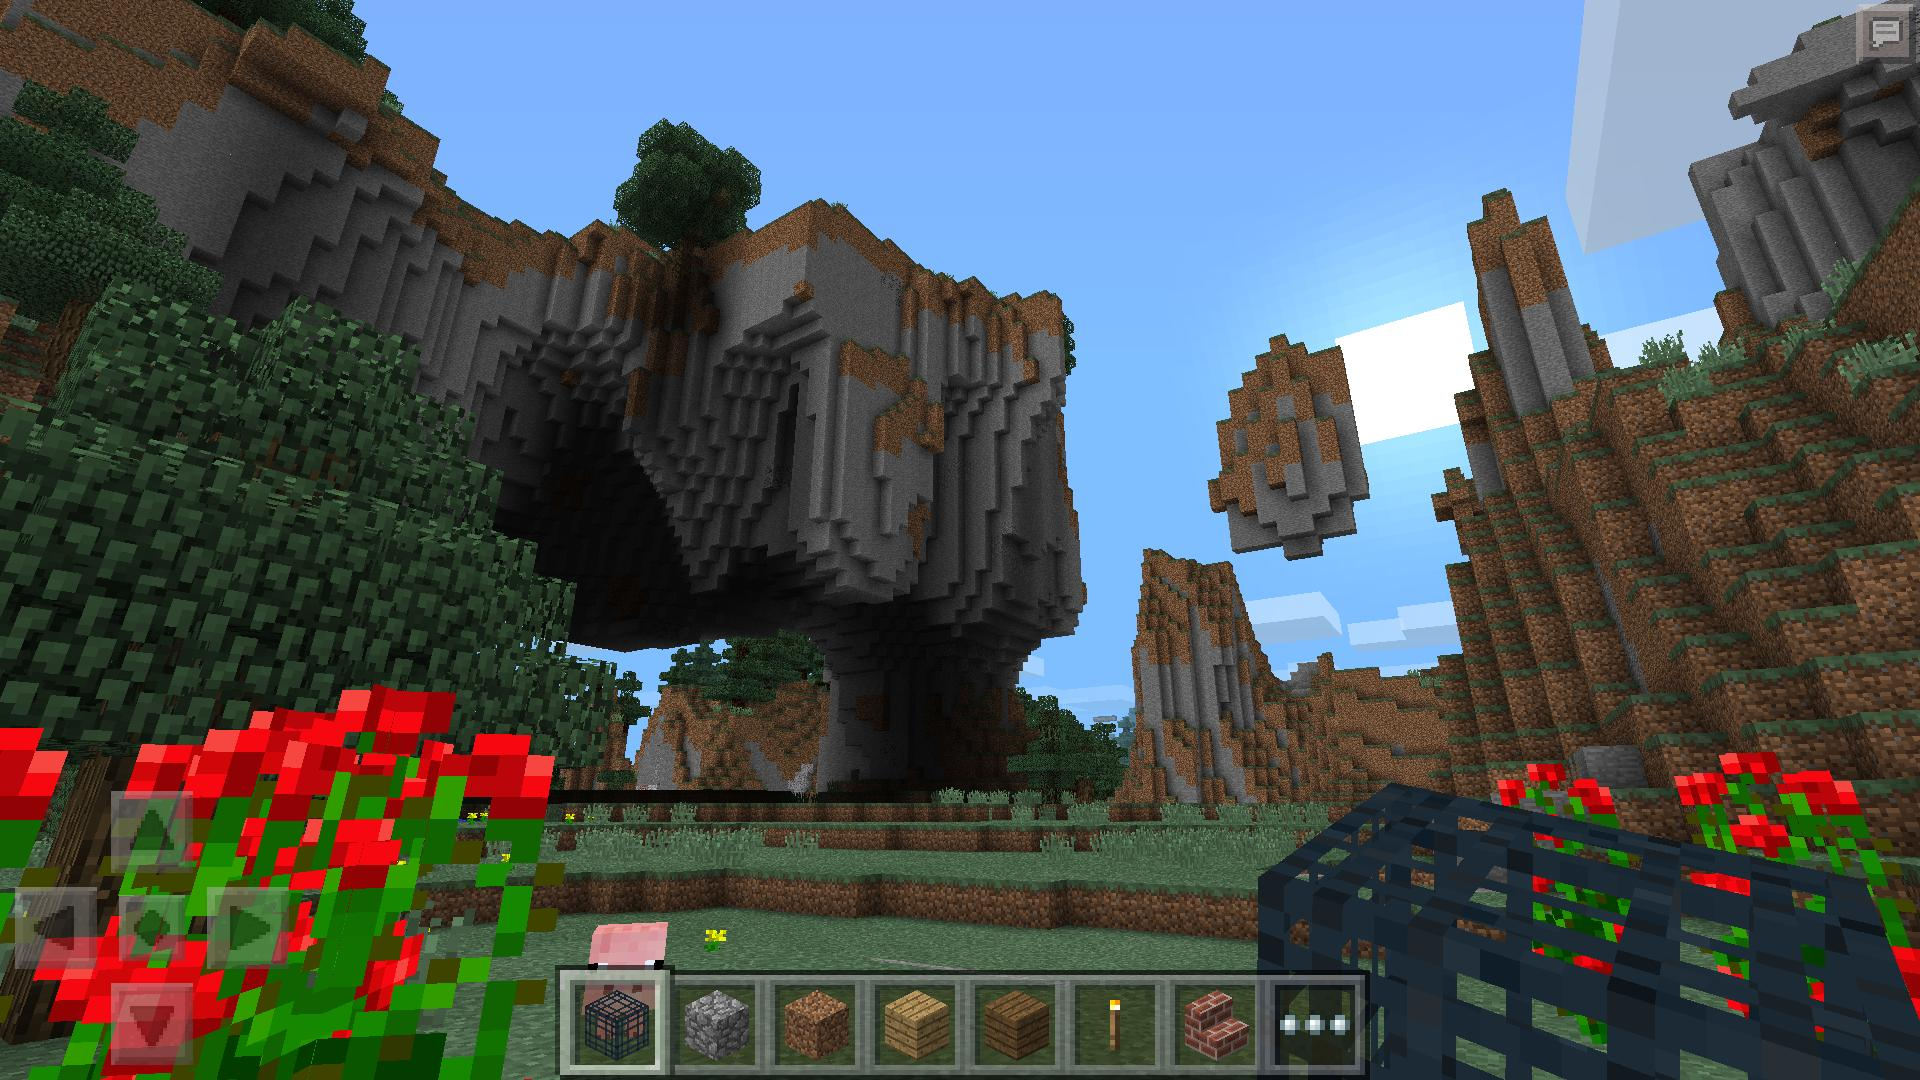 minecraft demo download android uptodown